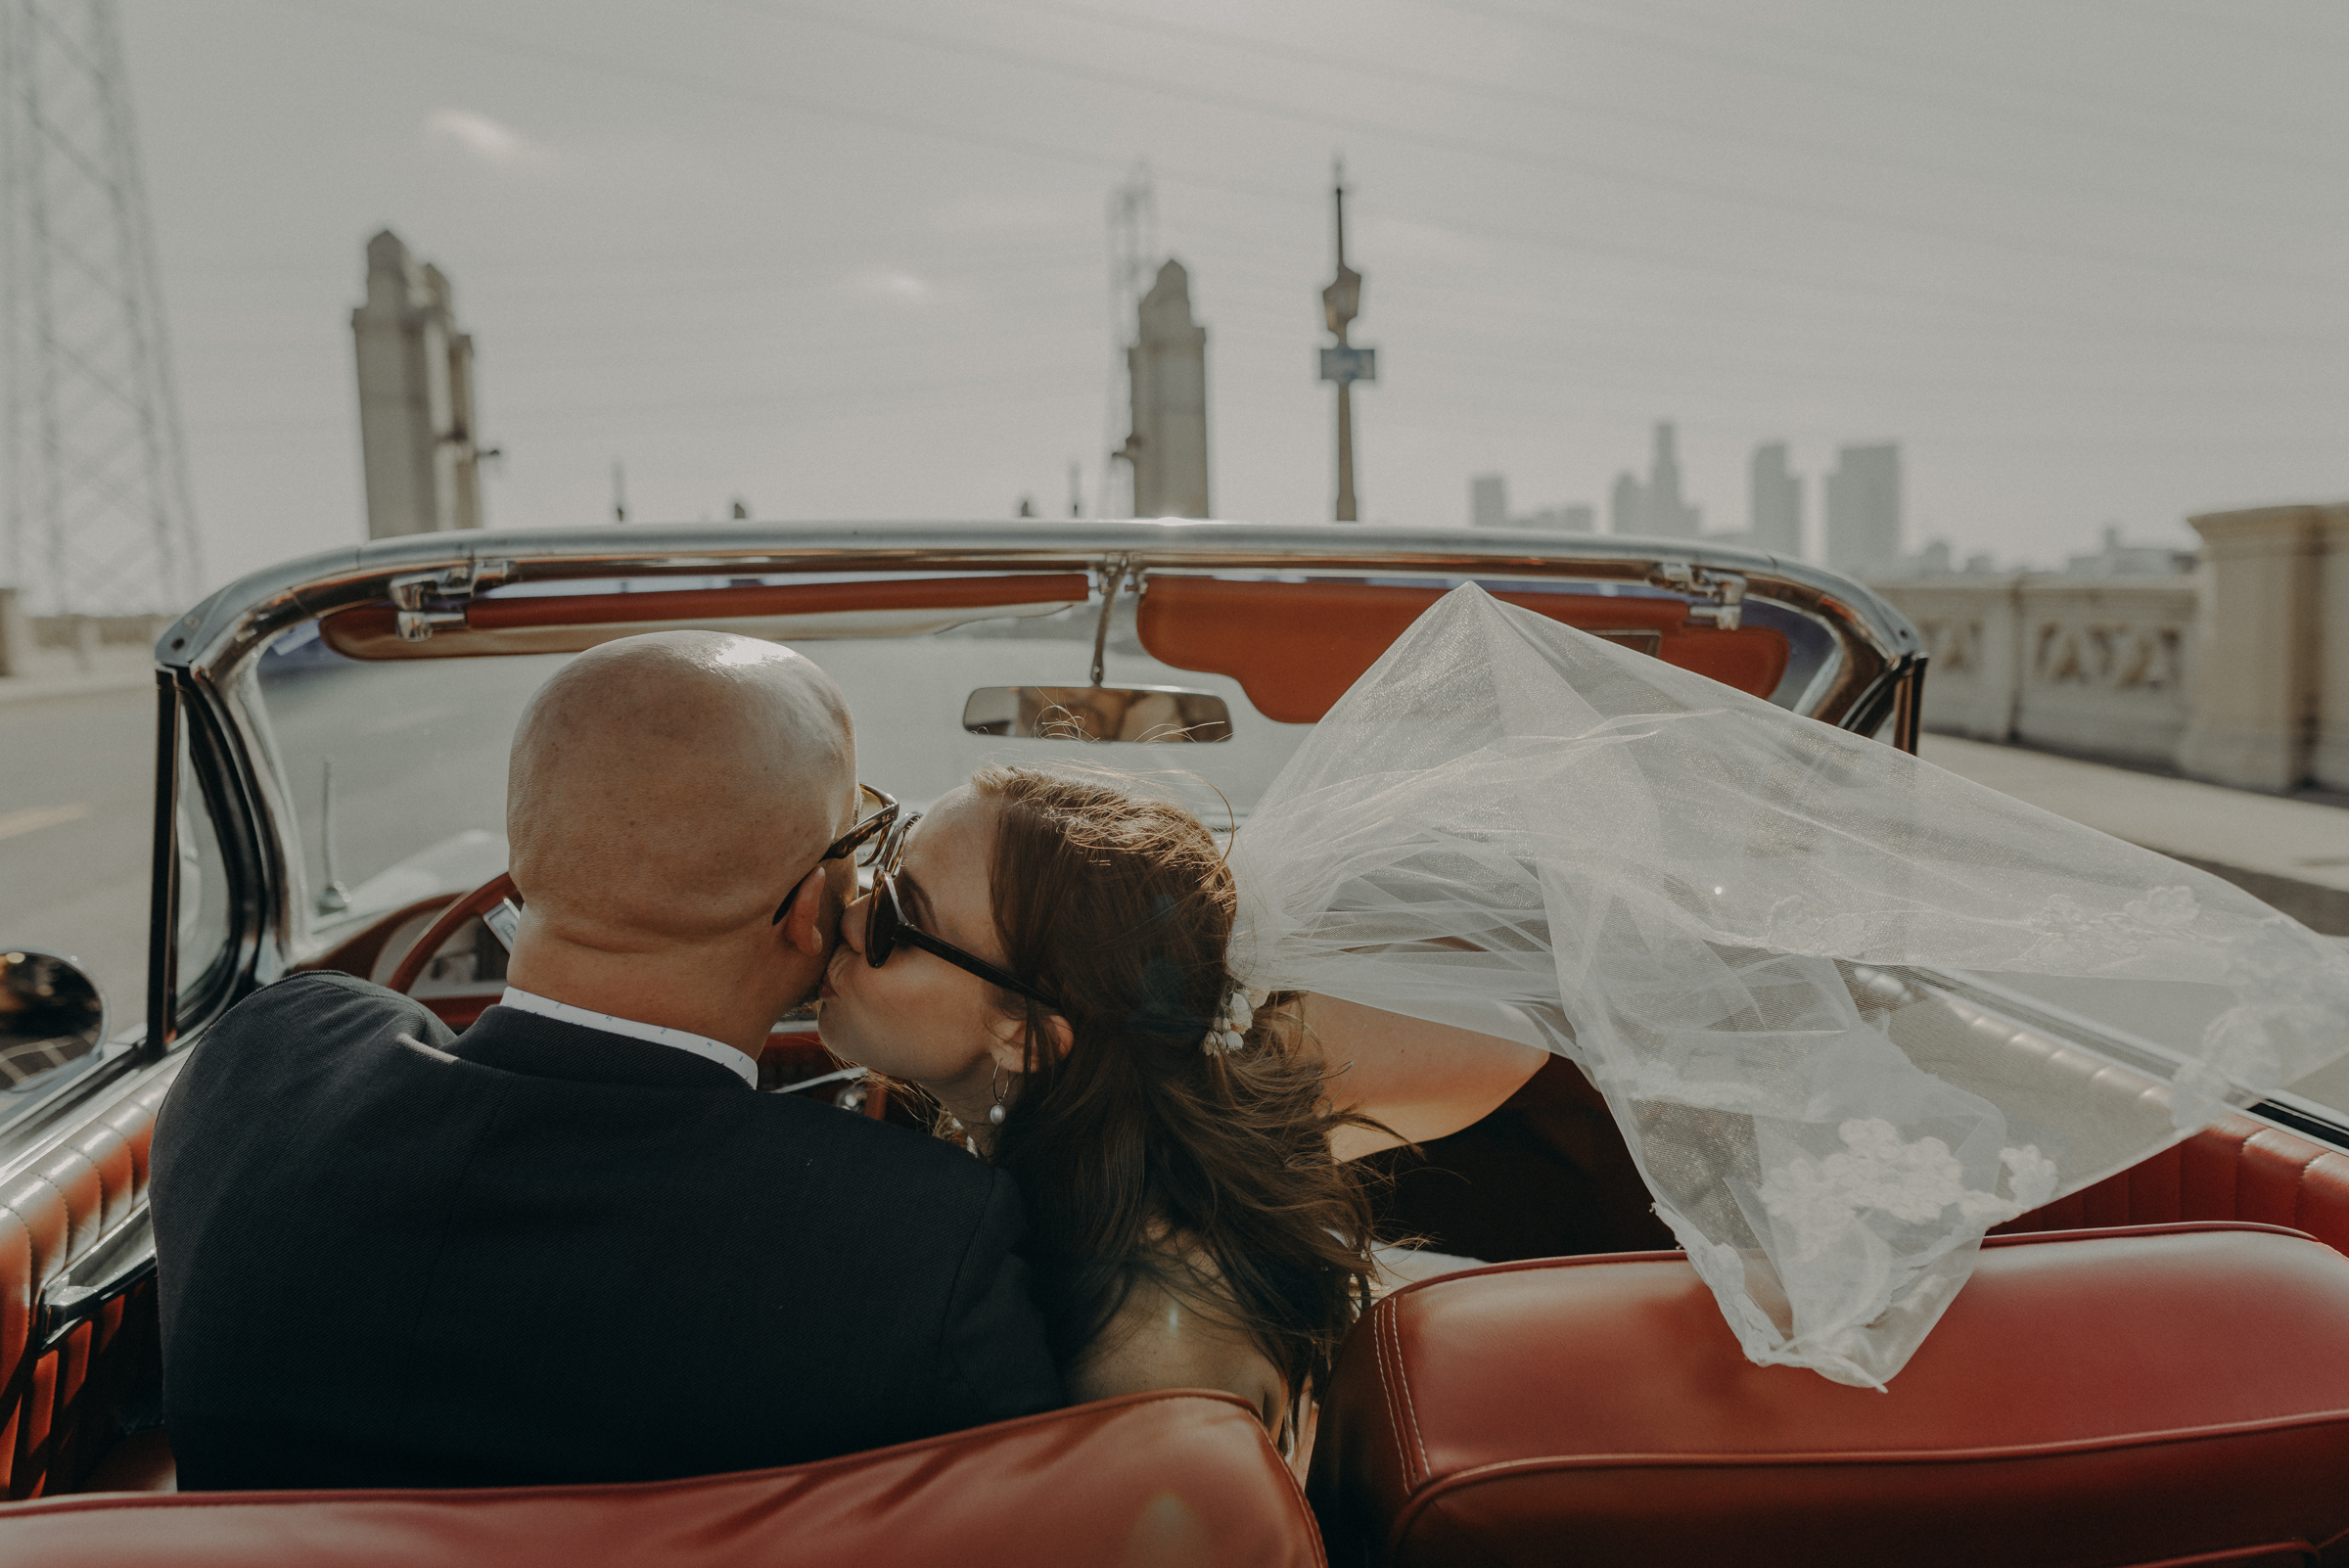 Isaiah + Taylor Photography - Los Angeles Wedding Photographer - The Unique Space_01.jpg